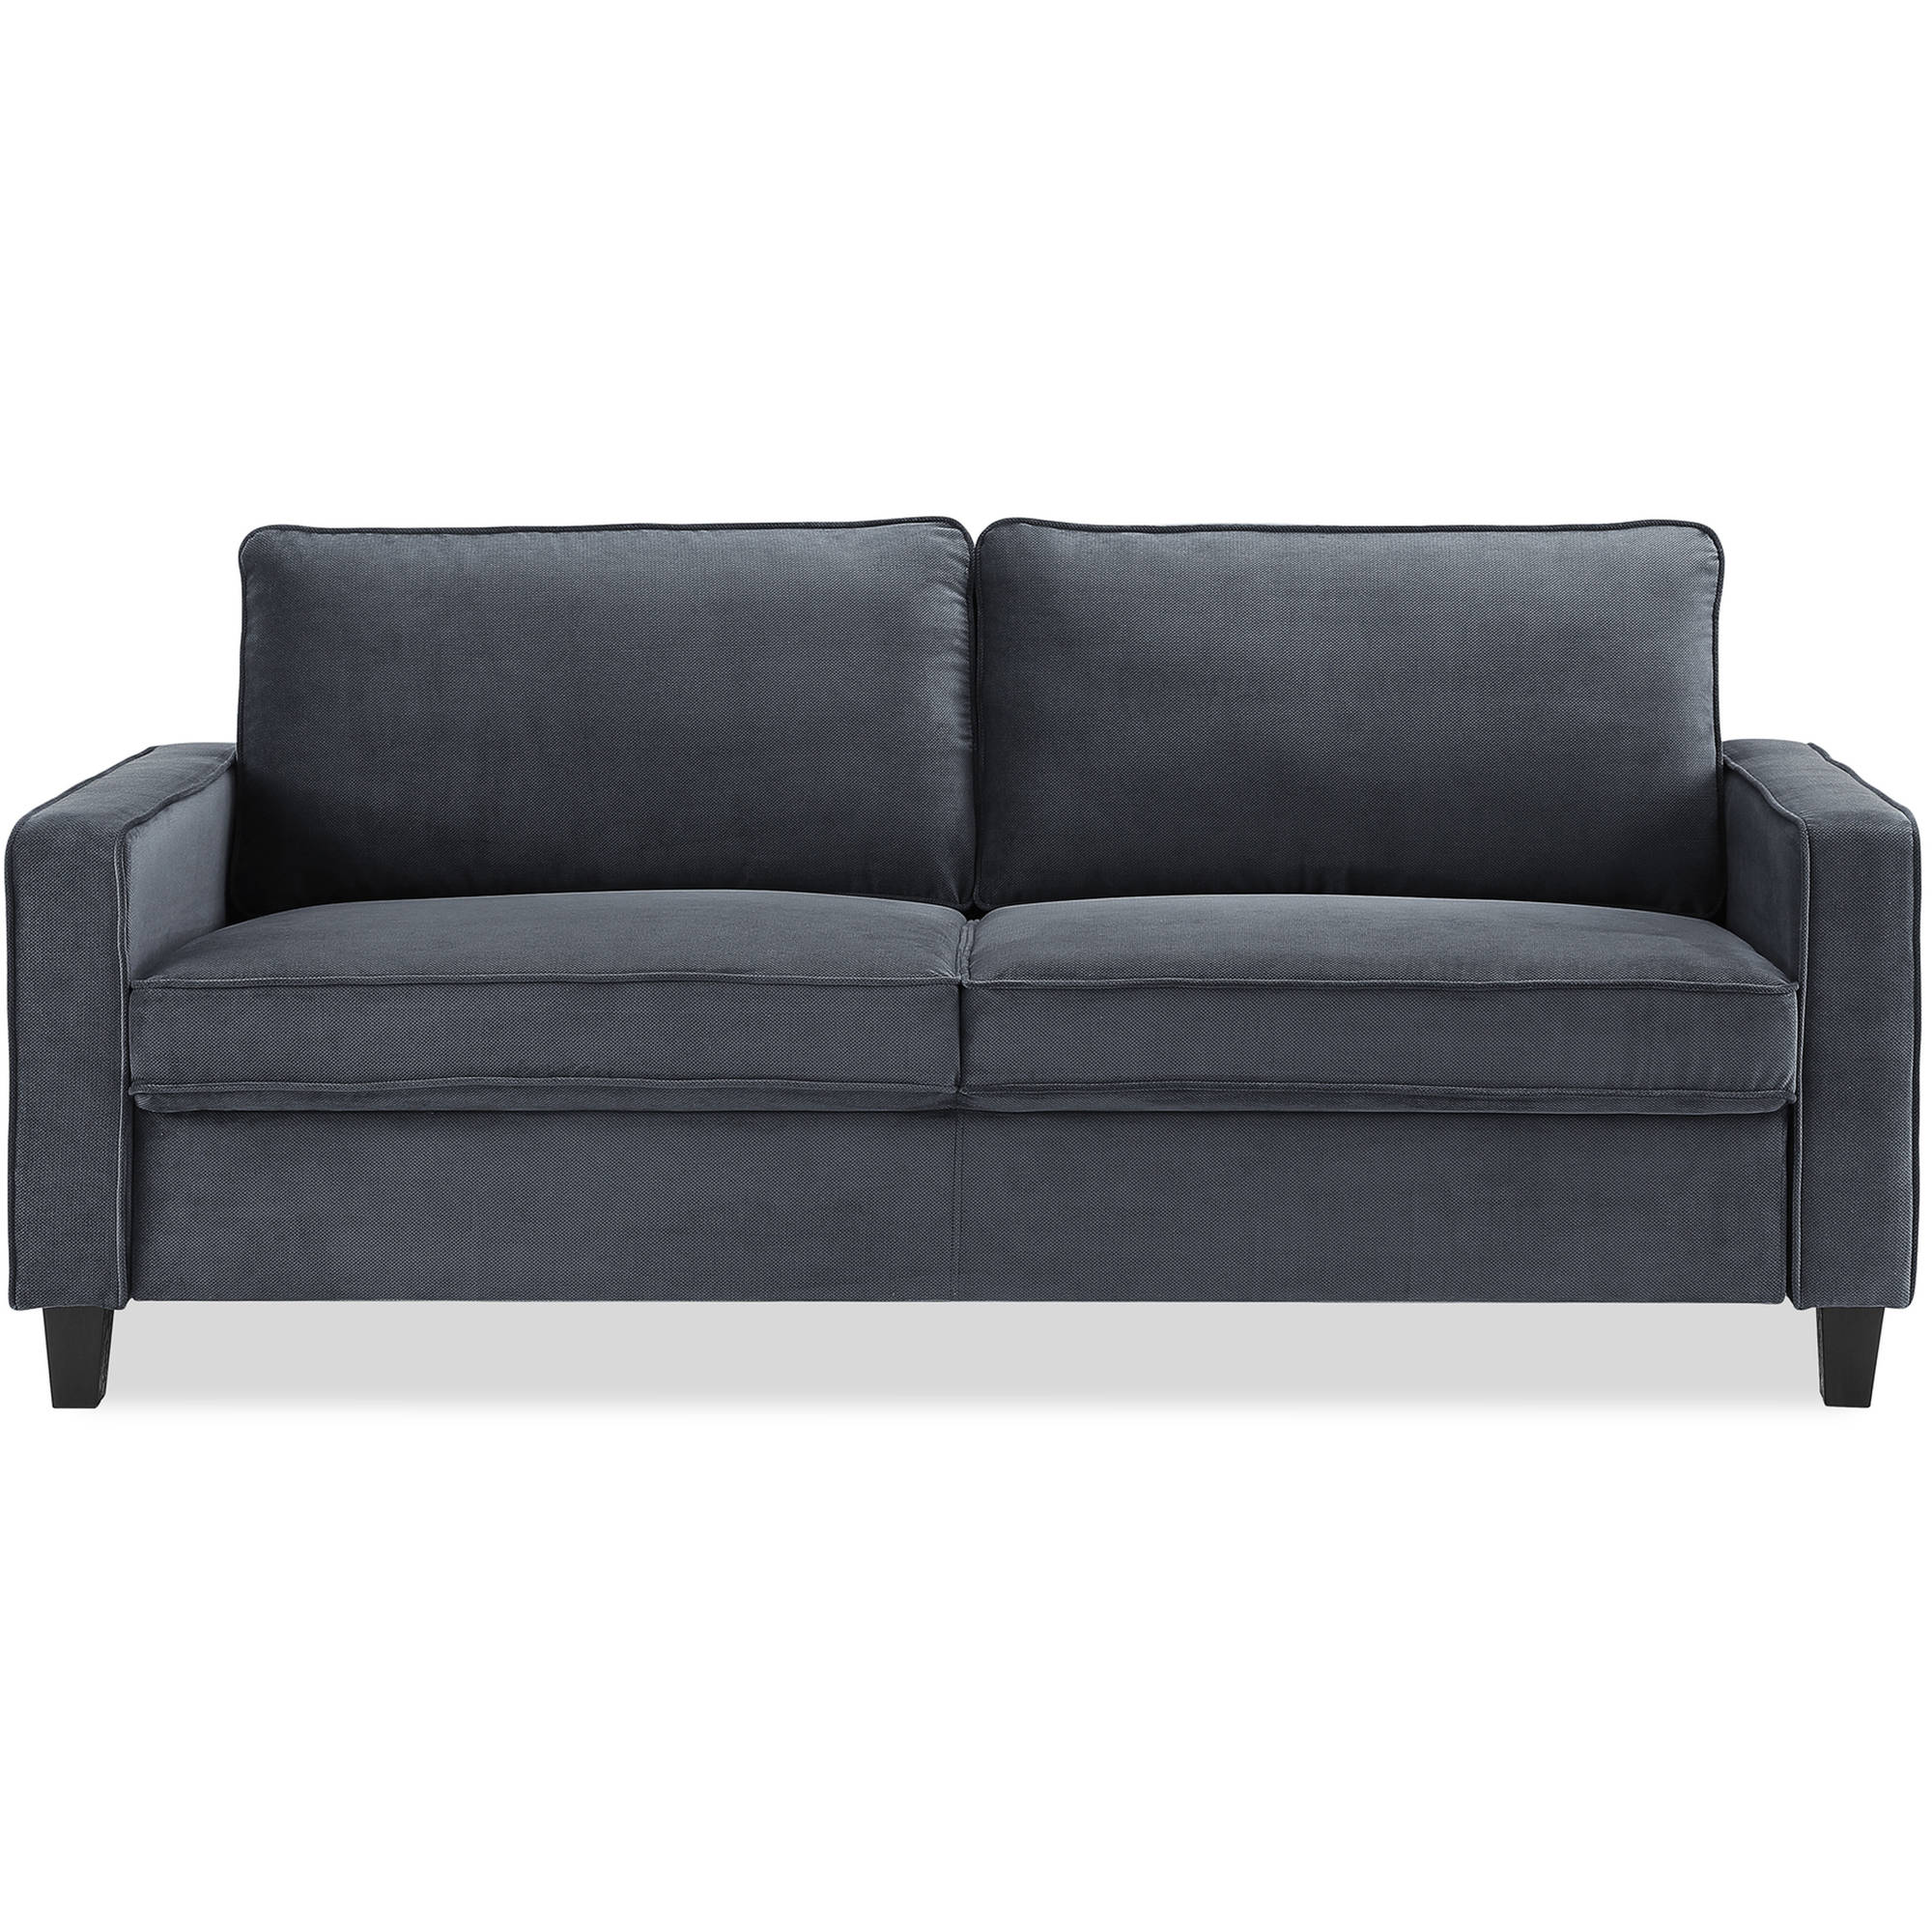 Gray microfiber sectional sofa casual black gray for Black microfiber chaise